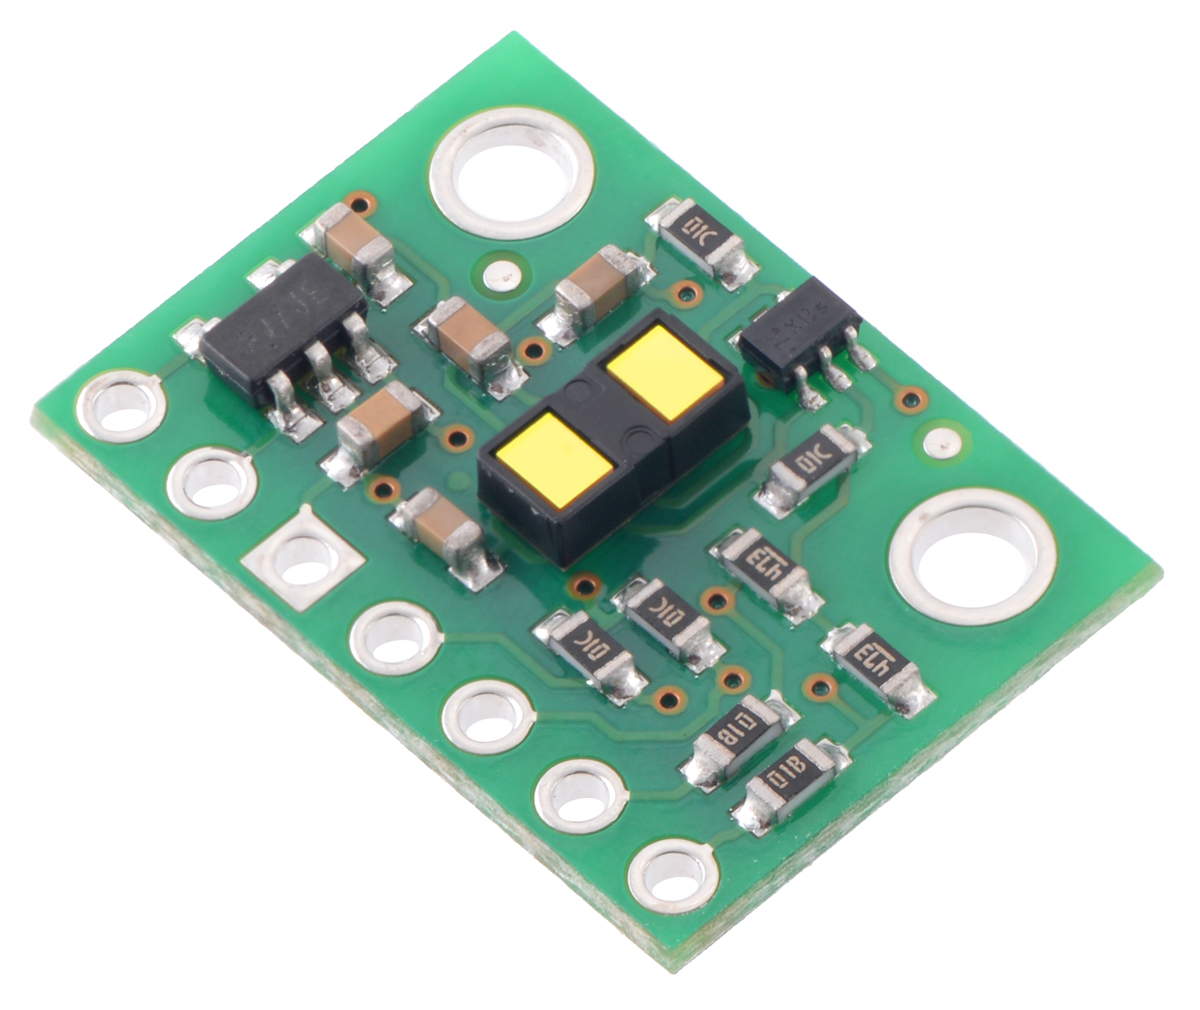 Pololu - VL53L1X Time-of-Flight Distance Sensor Carrier with Voltage